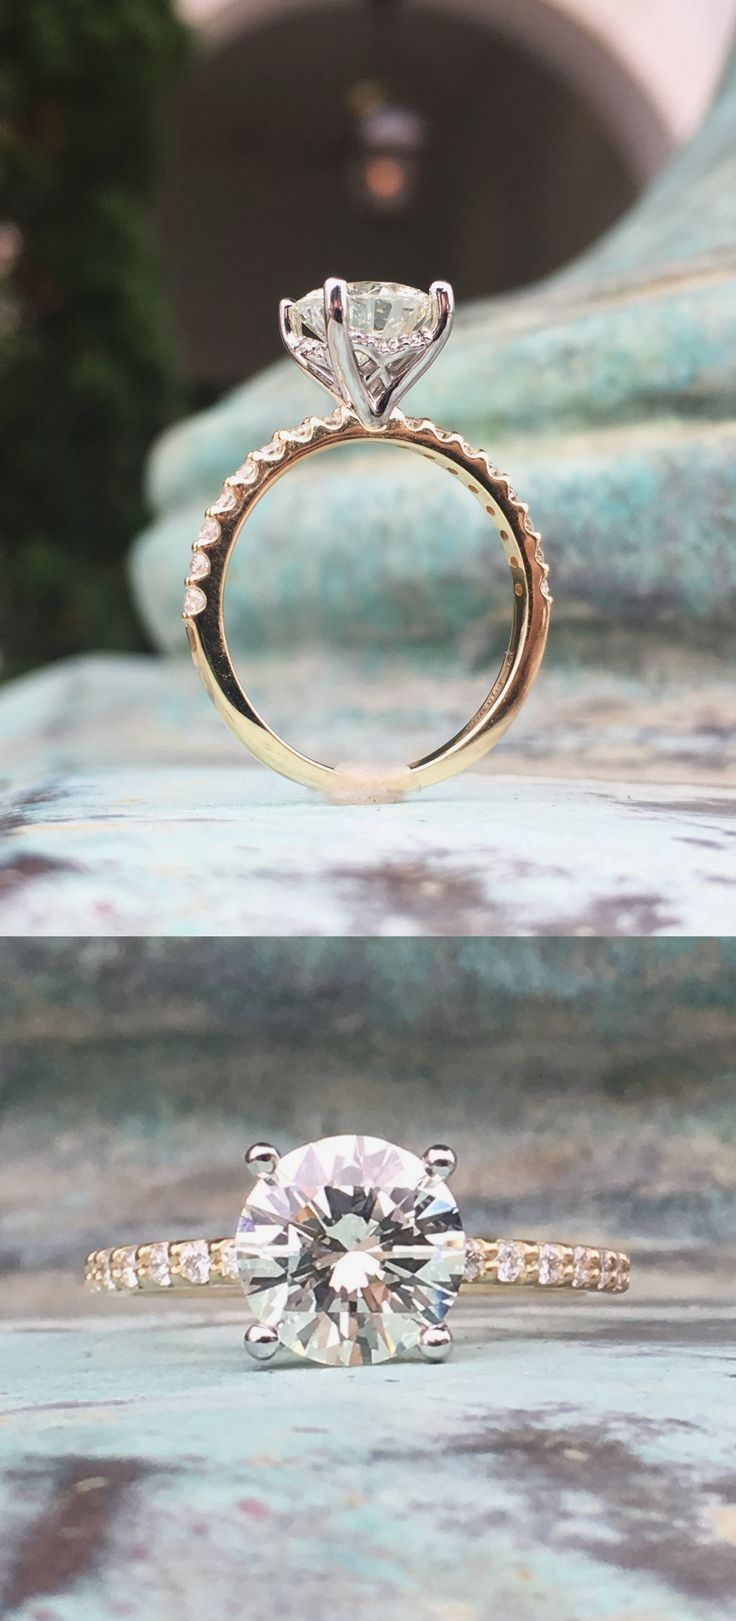 Round Engagement Ring, Solitaire Engagement Ring, Two Toned Engagement Ring, Decorative Basket Design, 1.75ct Round Diamond Ring, Contact Armentor Jewelers for Any Custom Design Idea